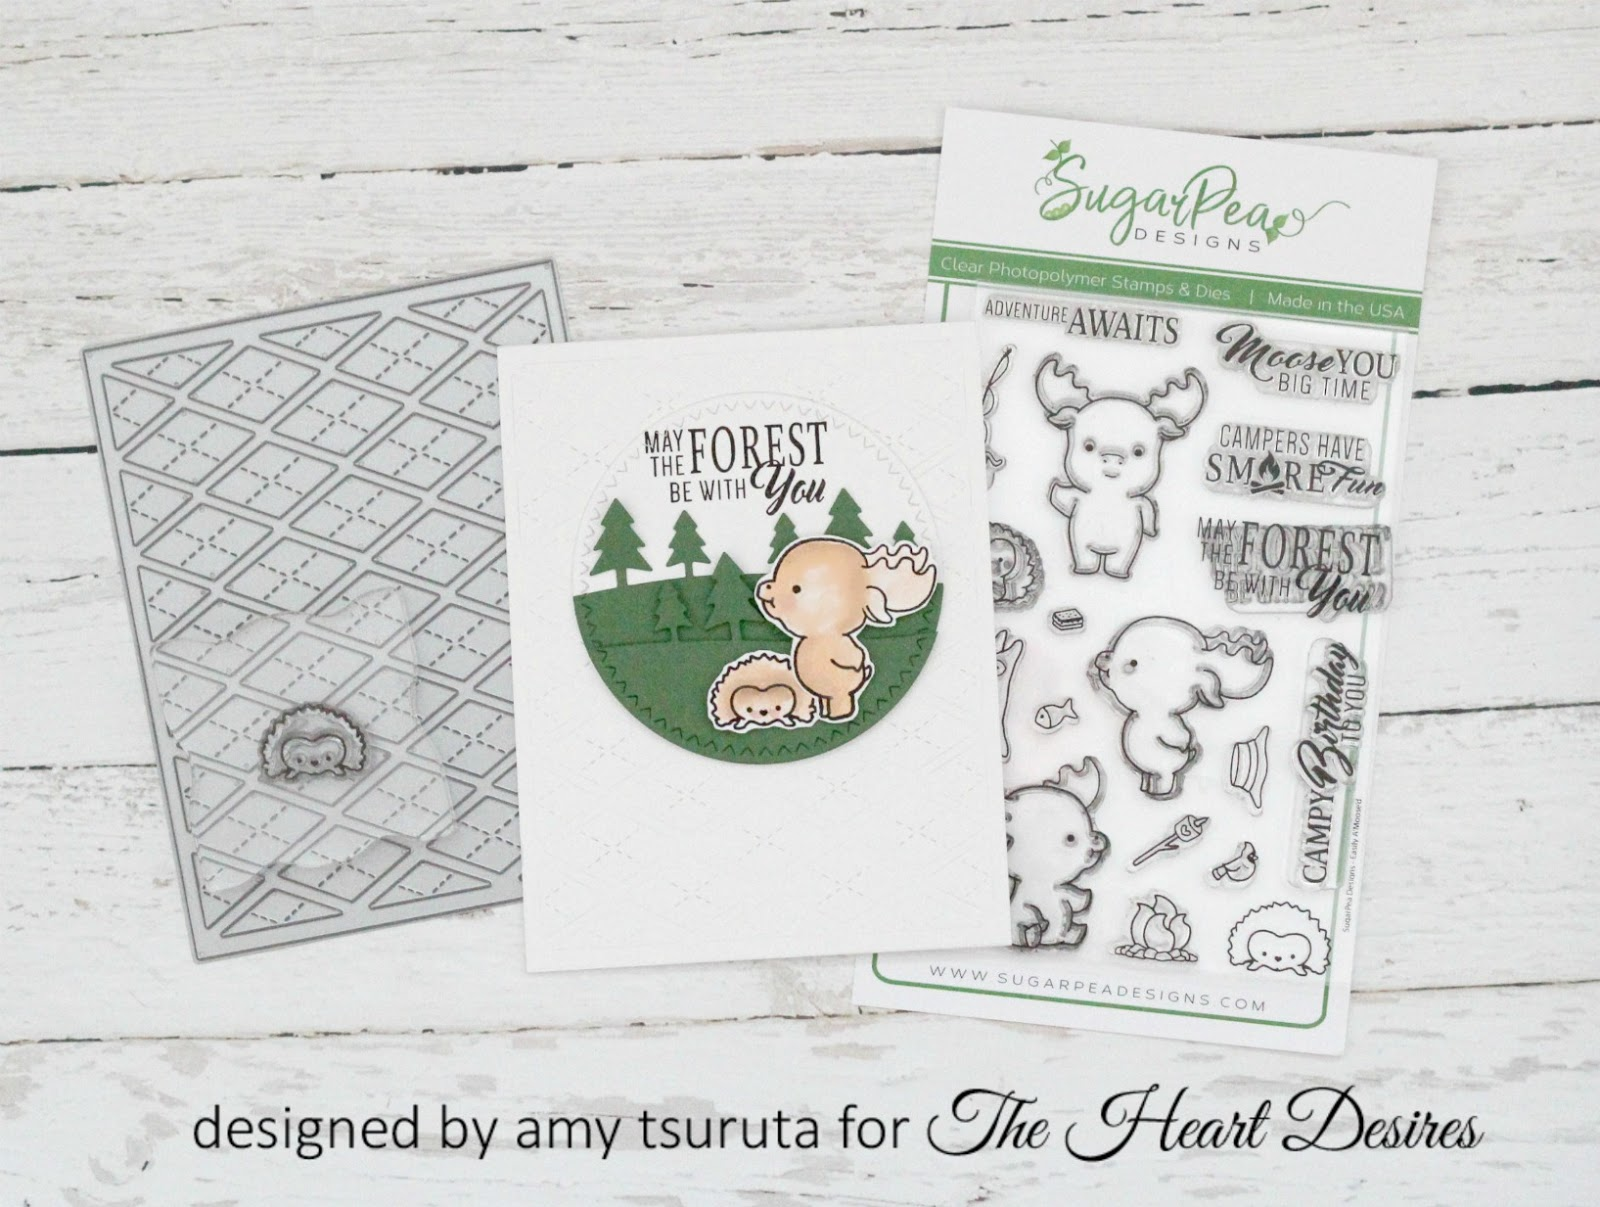 Hello And Happy Monday! Itu0027s Amy Here With You Today Sharing A Fun Project  That Features SugarPea Designs. Have You Seen The Easily Au0027Mooseu0027d Set?!